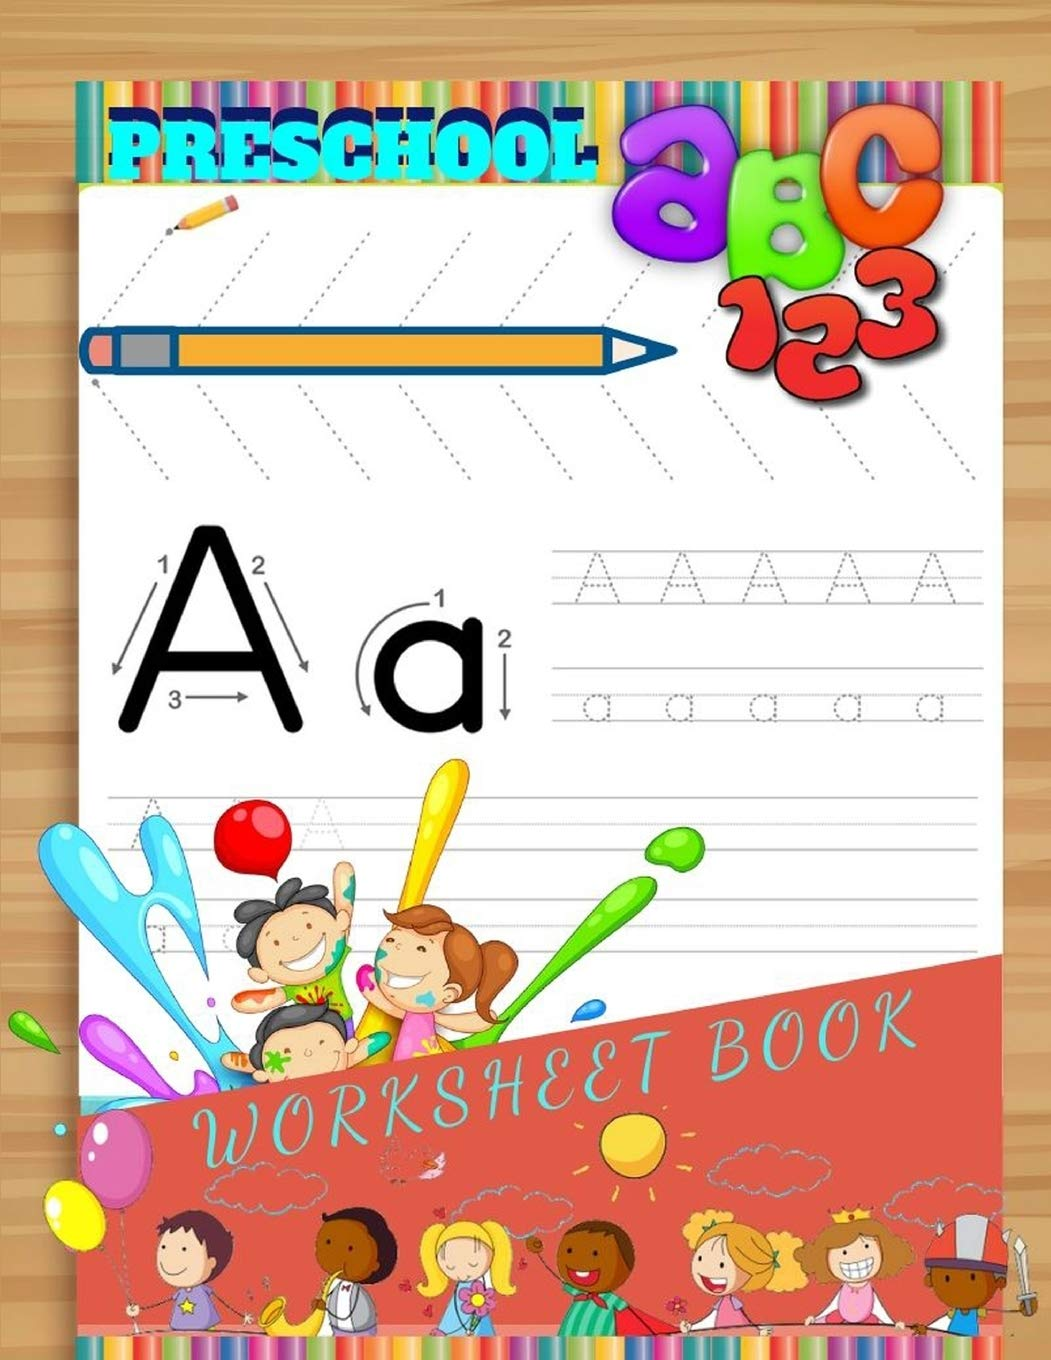 Preschool ABC 20 Worksheet Book Trace Letters Of The Alphabet ...